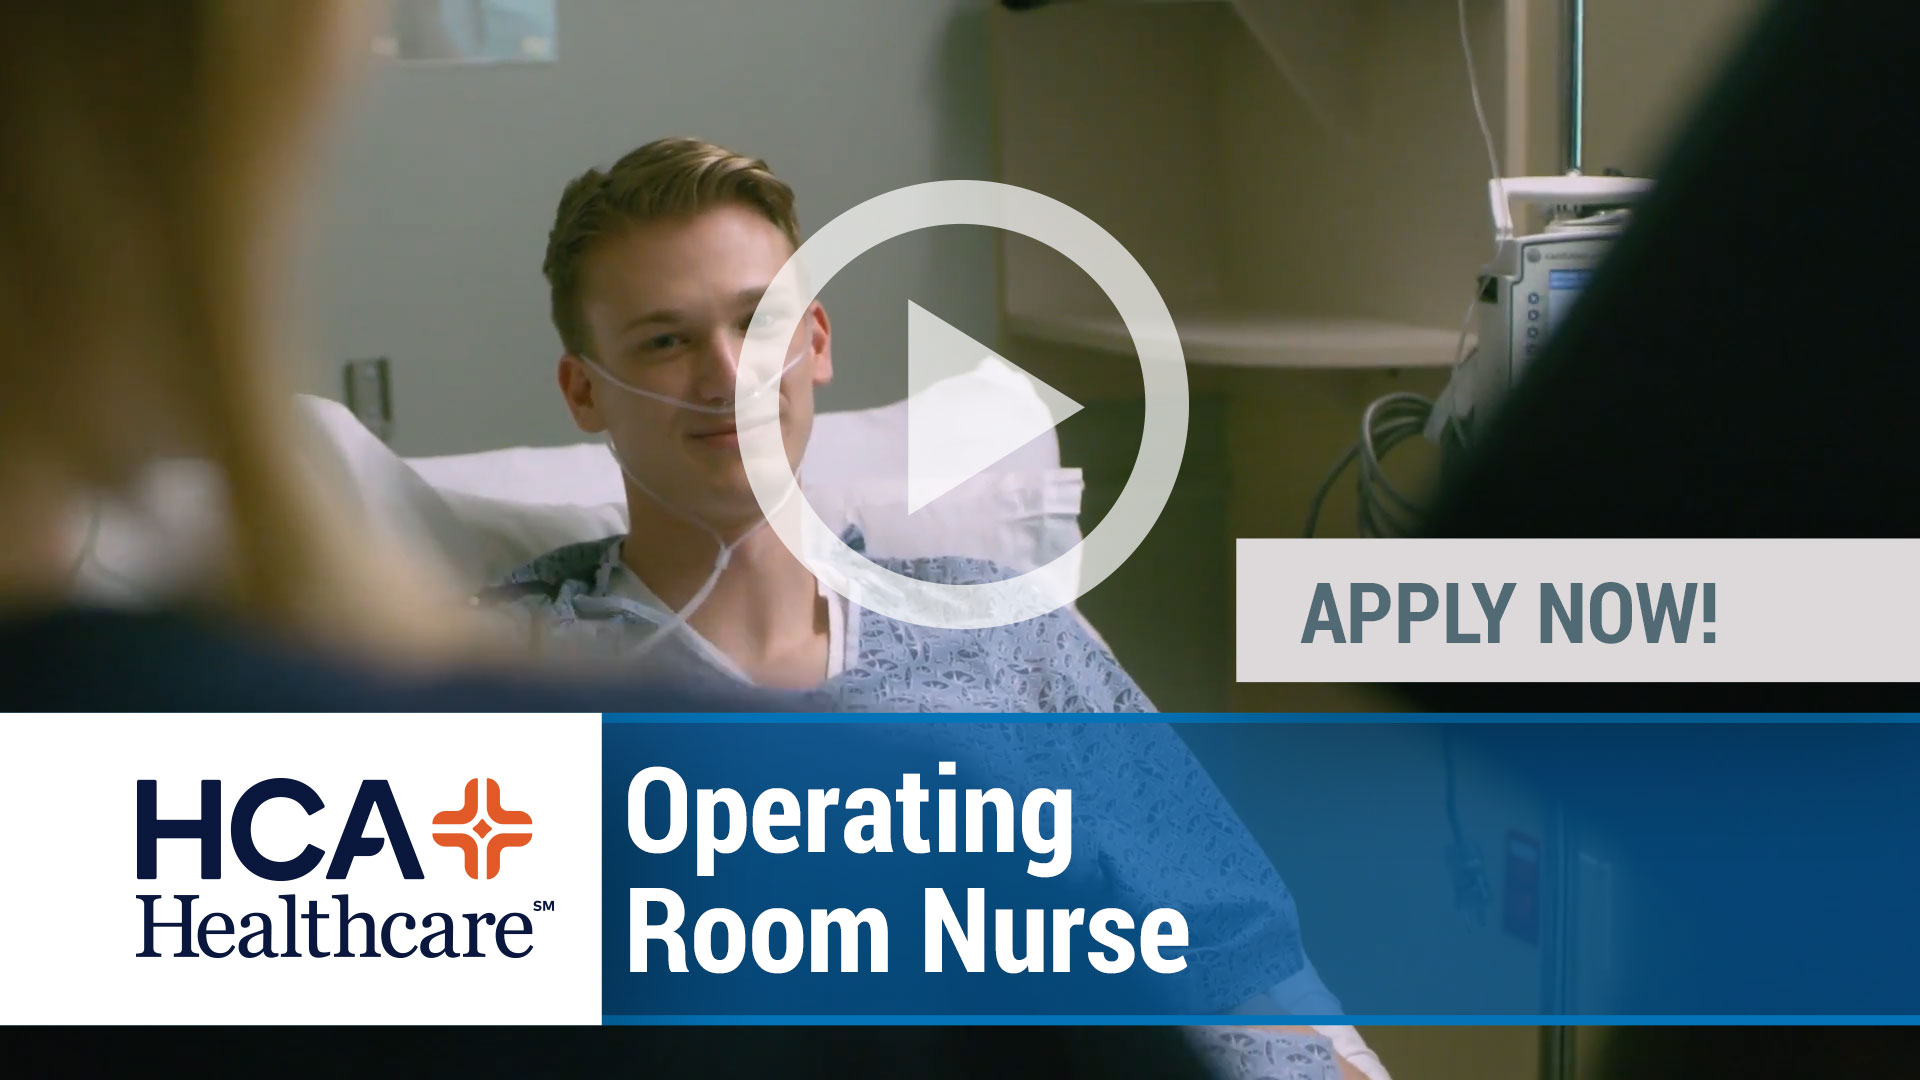 Watch our careers video for available job opening Operating Room Nurse in Inverness, Florida